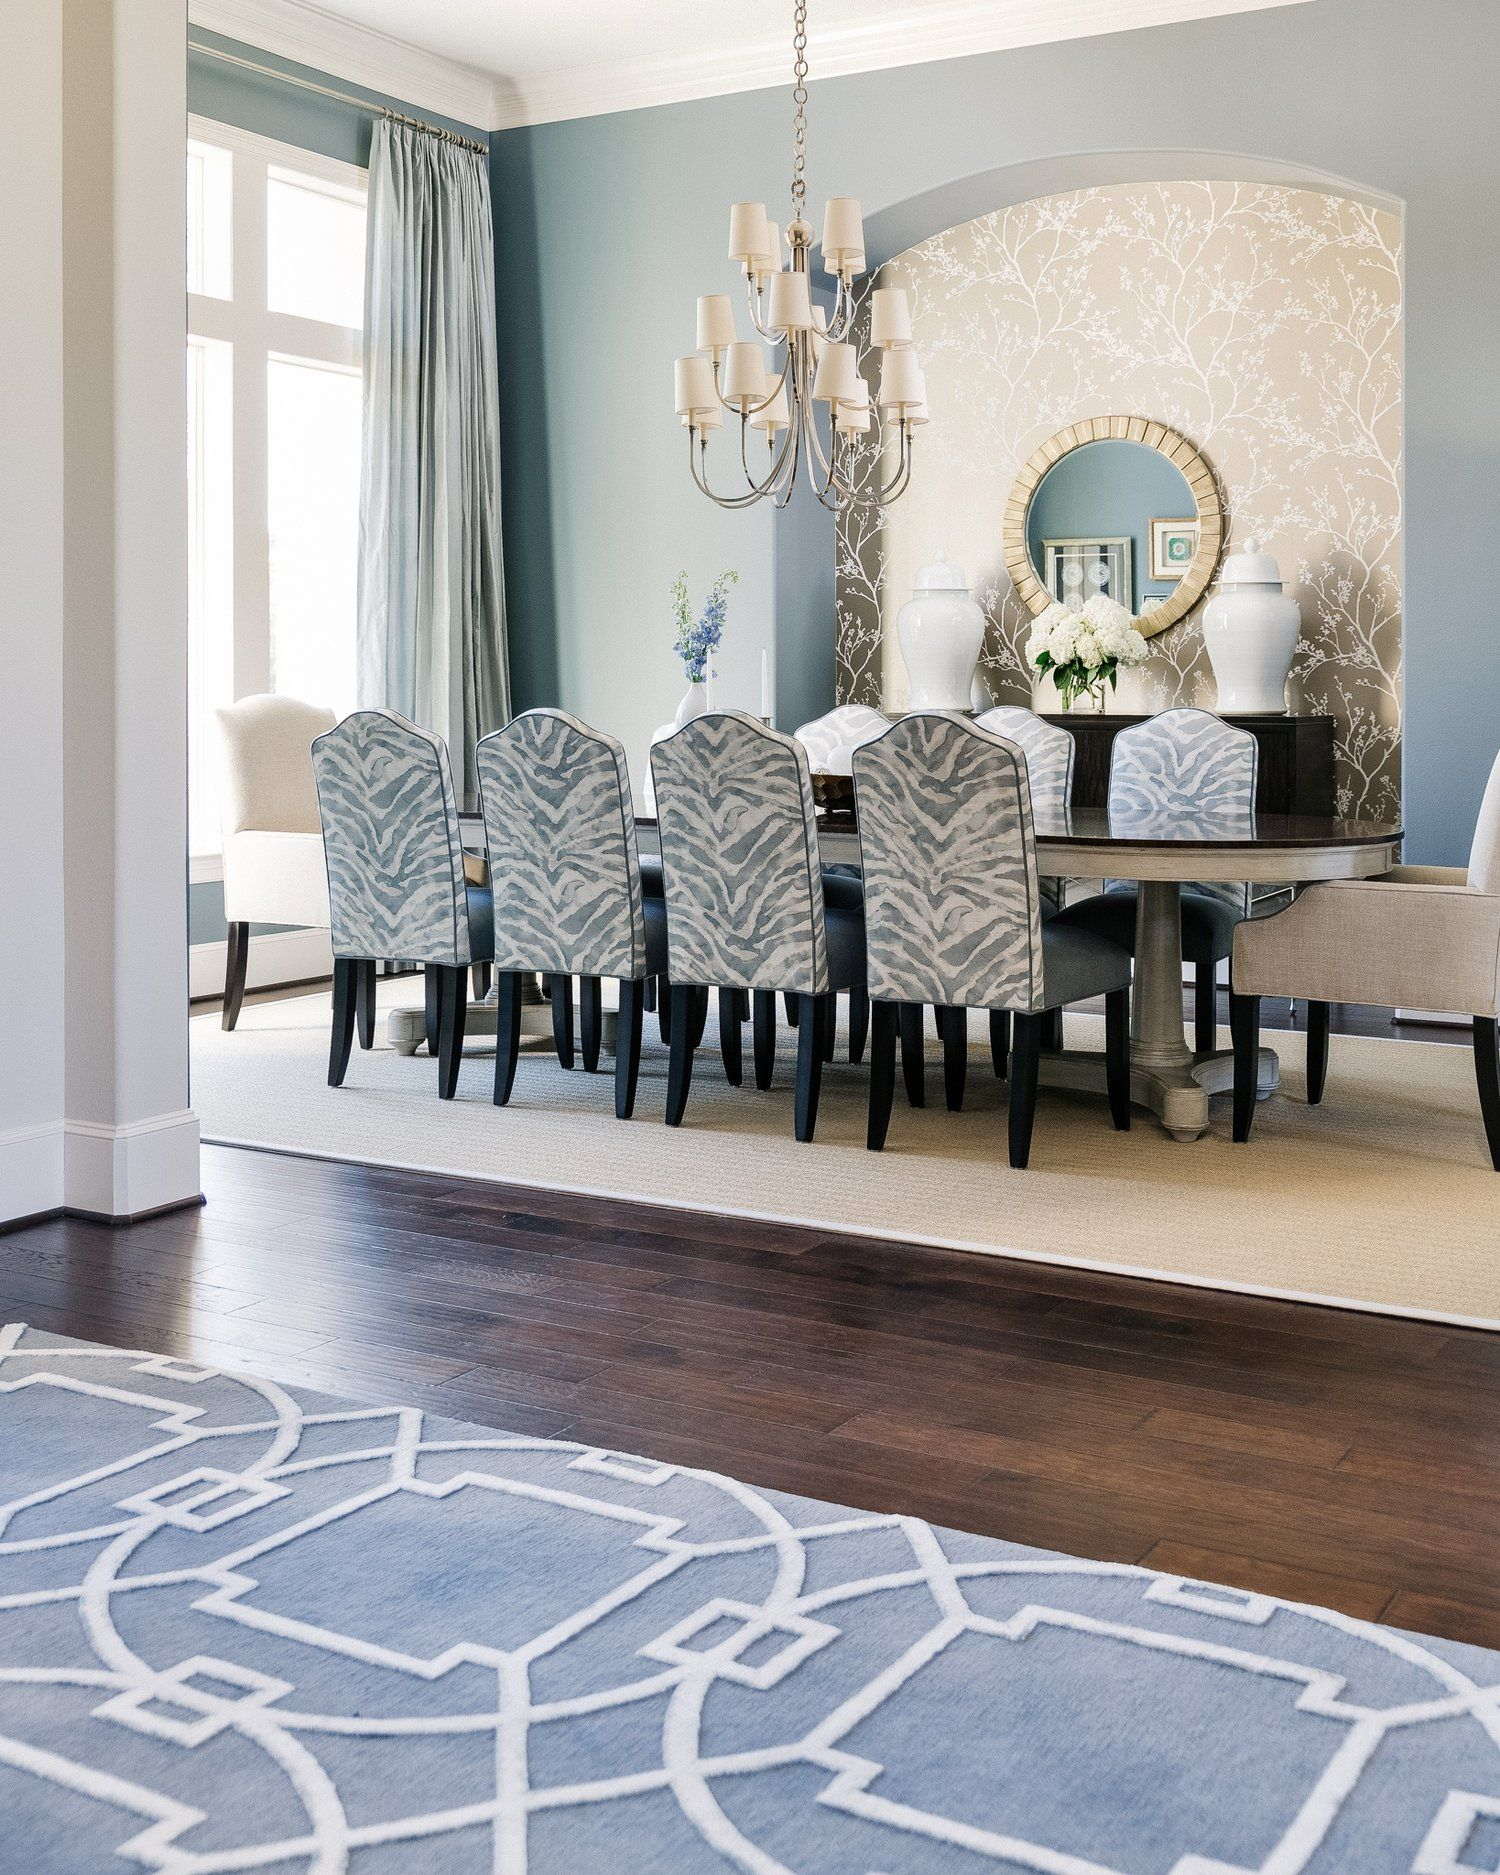 32 Elegant Ideas For Dining Rooms: An Elegant Dining Room With A Fresh, New